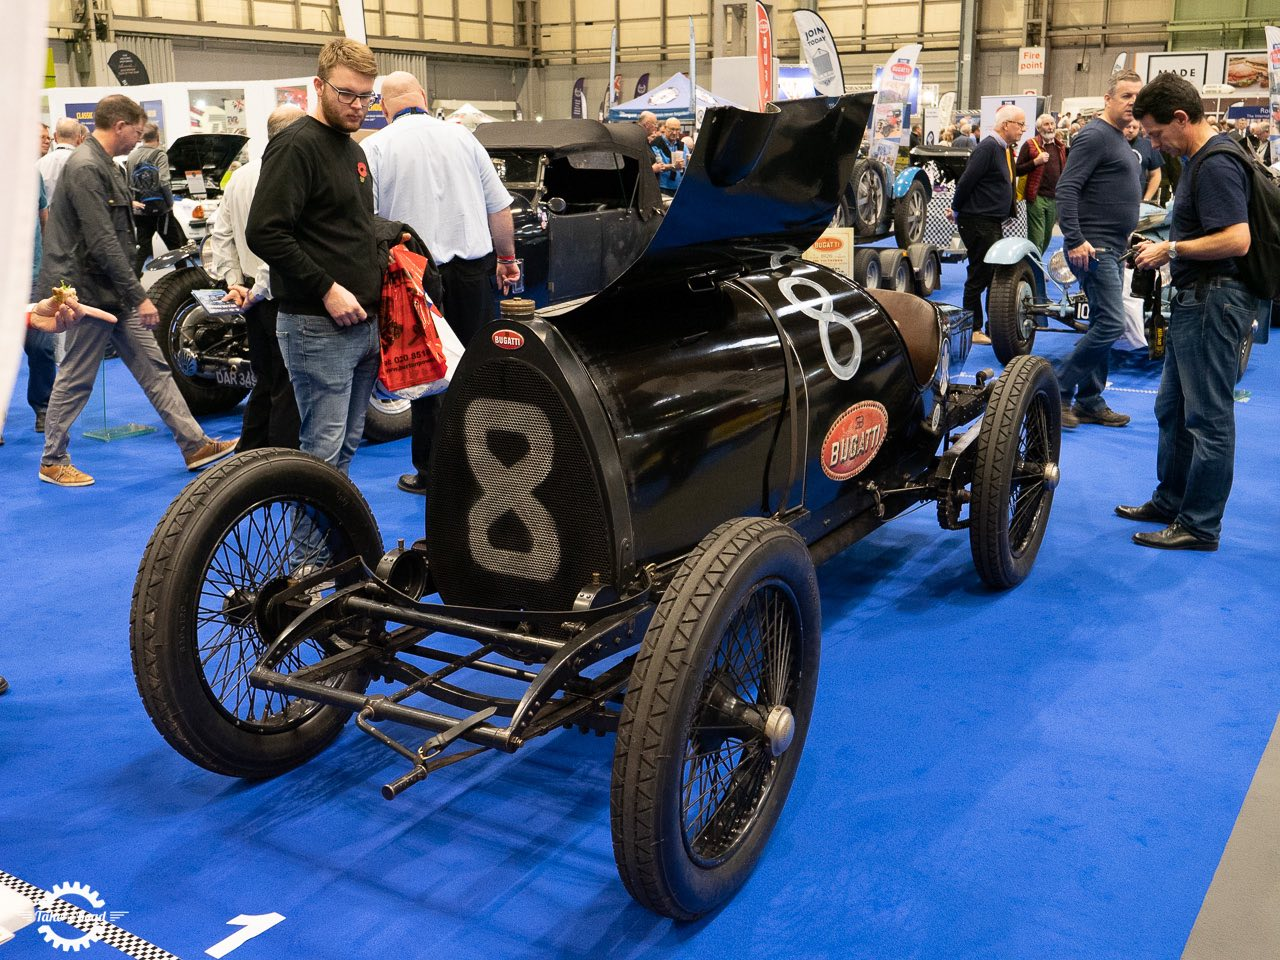 Tickets on sale for 2021 Lancaster Insurance Classic Motor Show